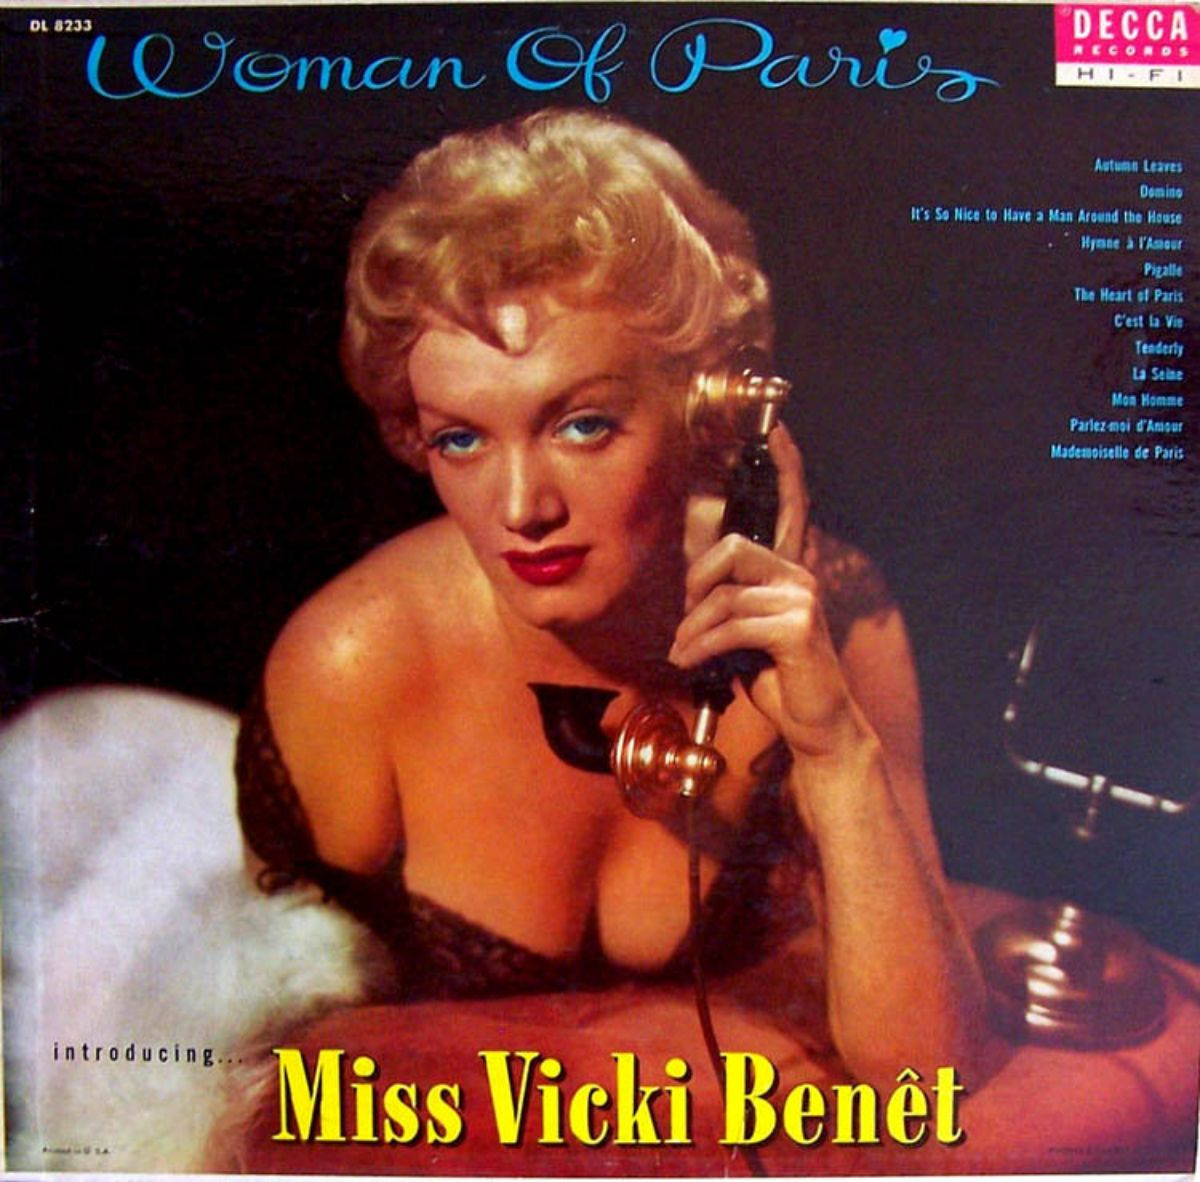 Boobs On The Cover 30 Sexy Vintage Album Covers From